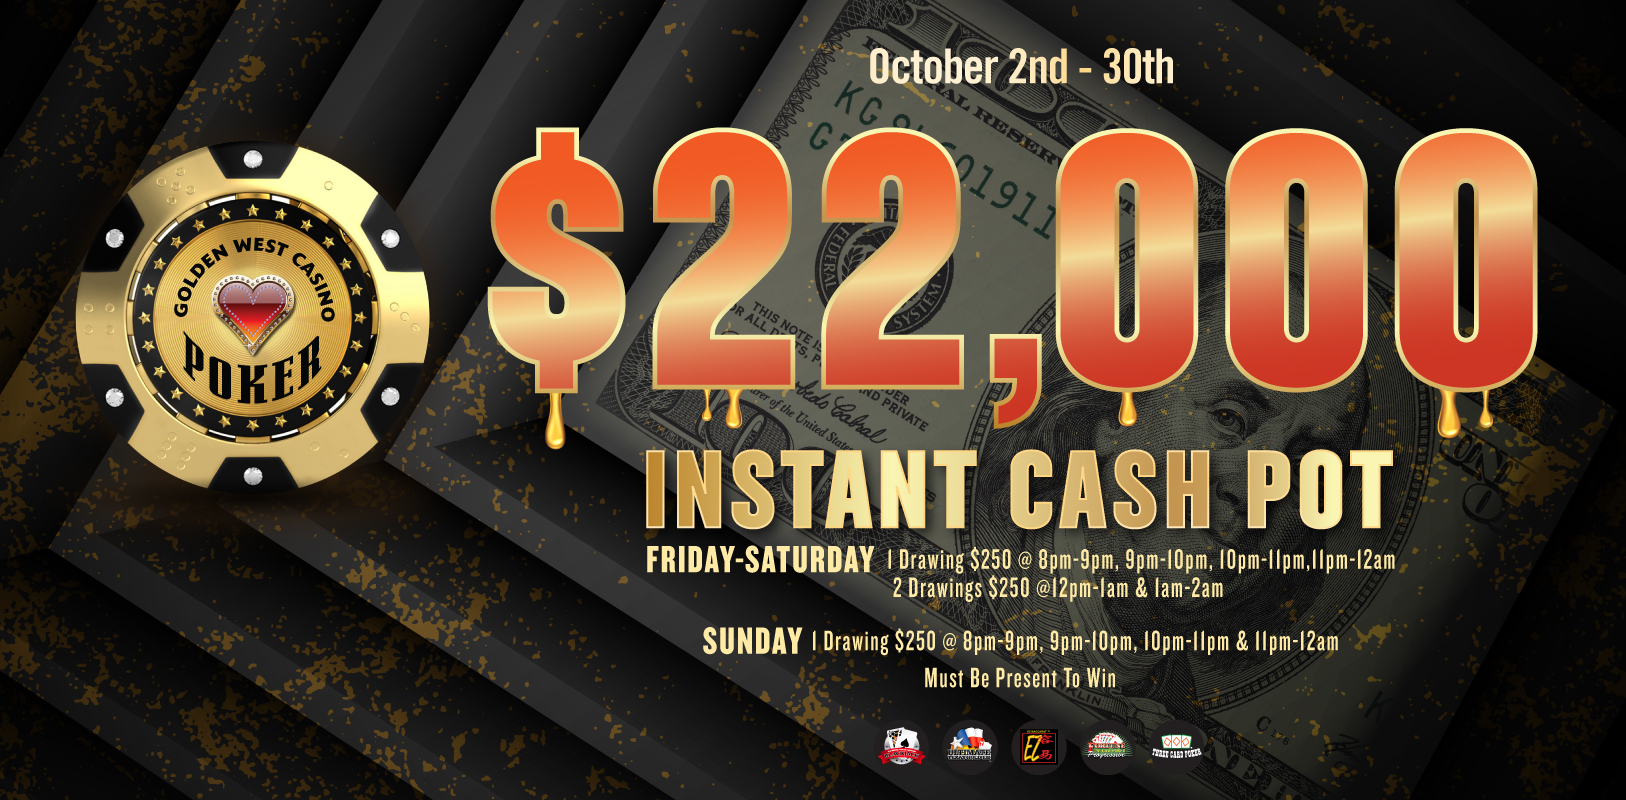 $22K Instant Cash Pot Oct. 2nd-30th Friday's-Saturday's: One $250 Drawing @ 8p-9p, 9p-10p, 10p-11p & 11p-12a & Two $250 Drawings @ 12a-1a & 1a-2a Sunday's: One $250 Drawing @ 8p-9p, 9p-10p, 10p-11p & 11p-12a